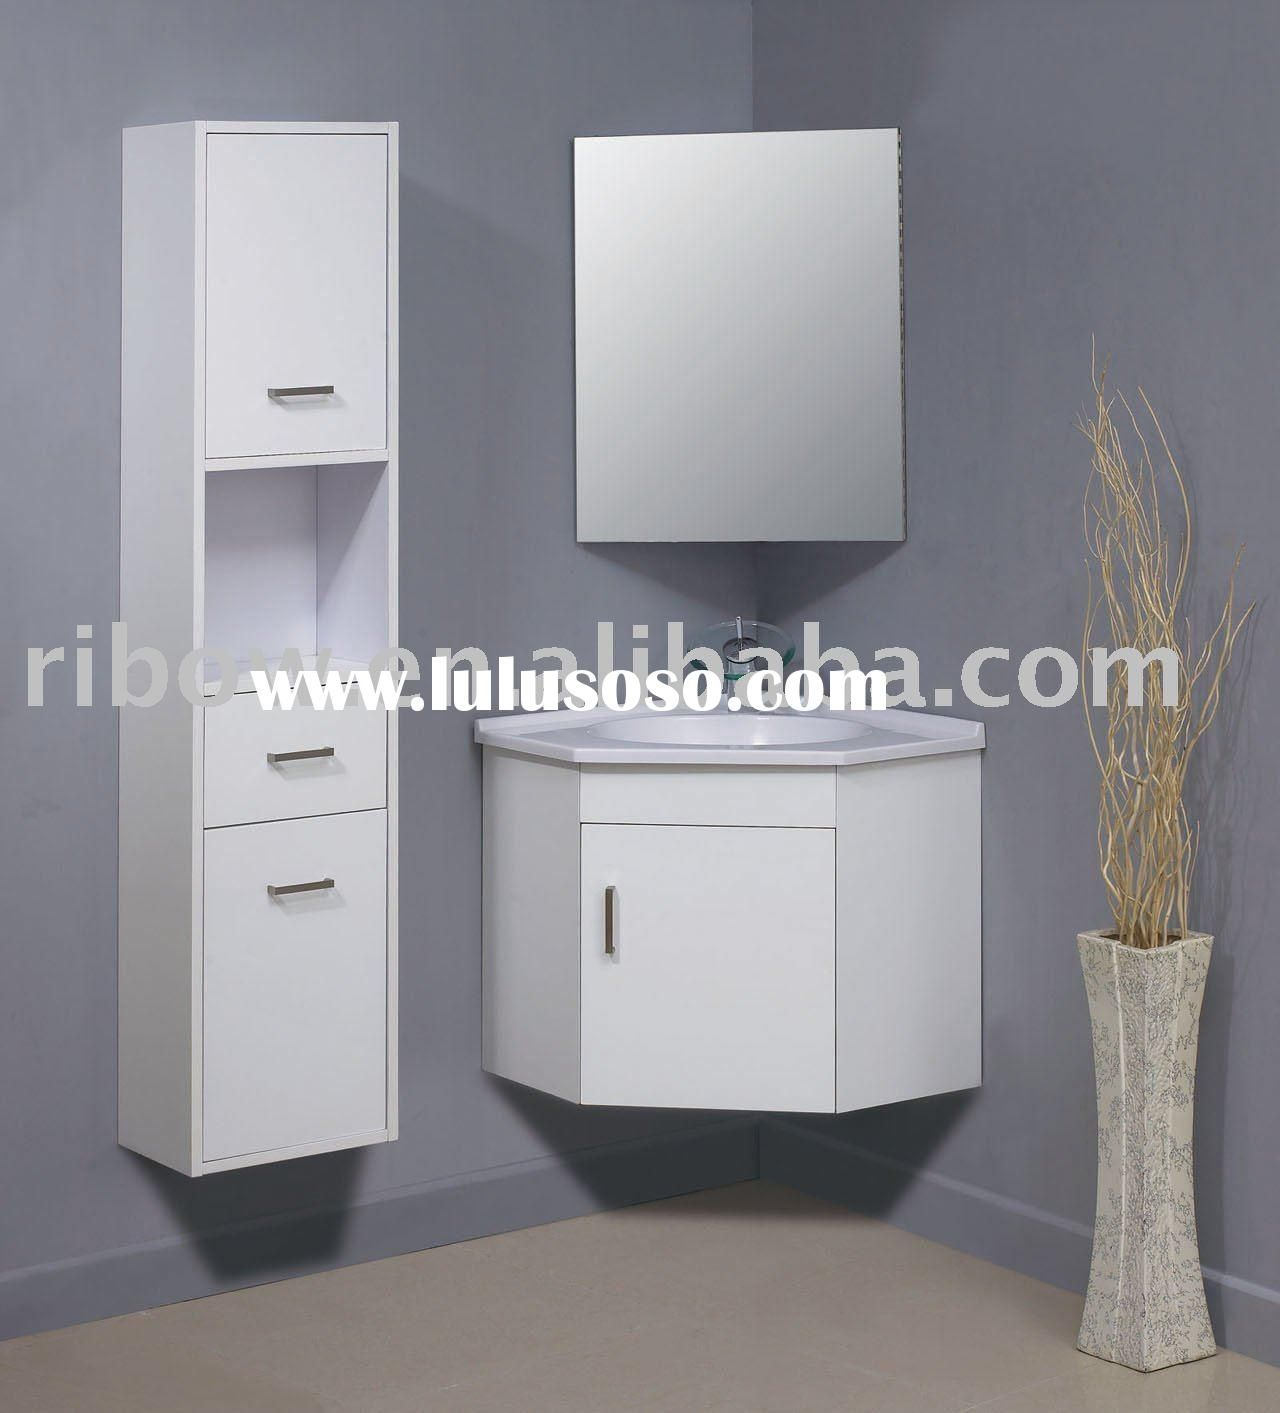 V95600 1 Wall Mounted Bathroom Corner Cabinet For Sale Price China Manufactu Bathroom Corner Cabinet Bathroom Furniture Vanity Bathroom Wall Storage Cabinets